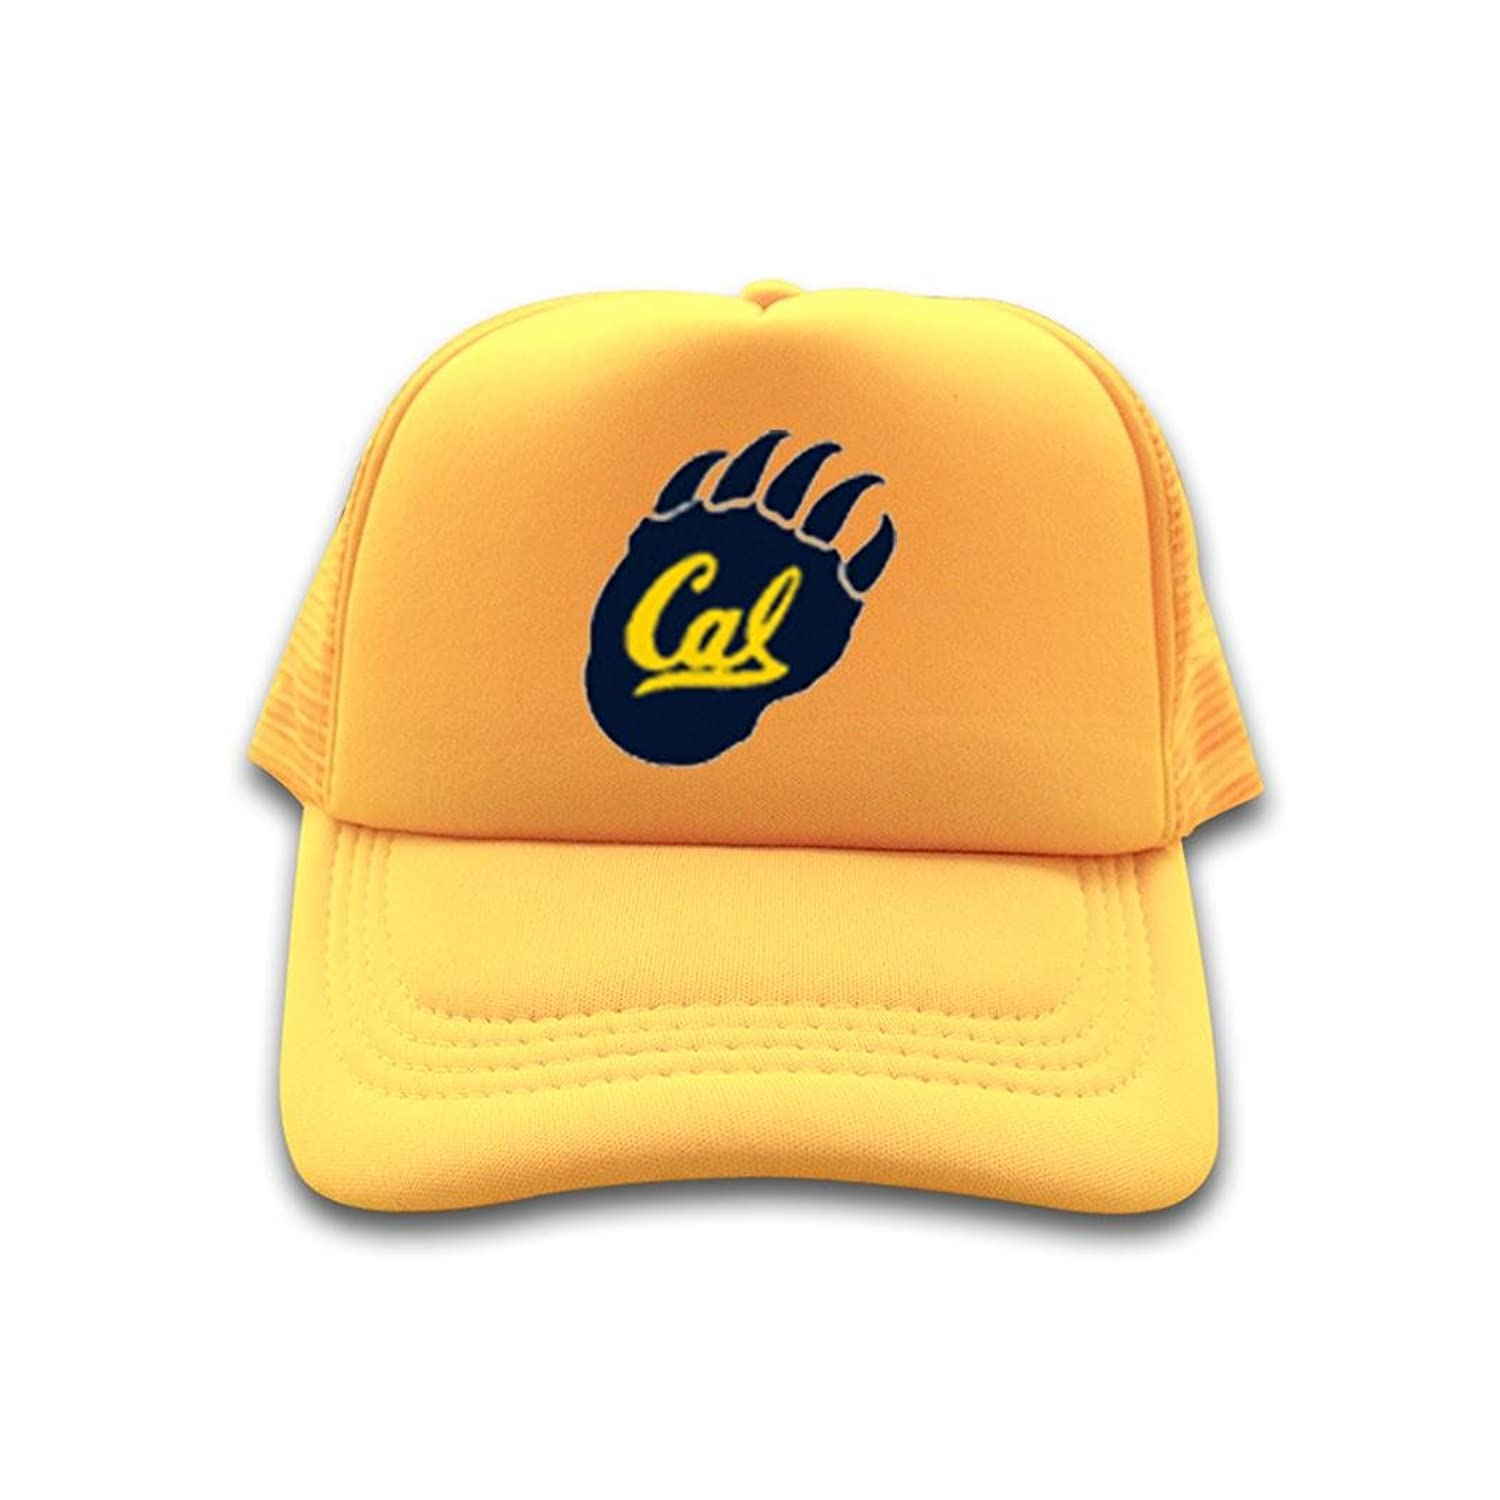 Hot Mesh Trucker Hats NCAA 2016 Cal Bears Logo Special breathable Sun caps